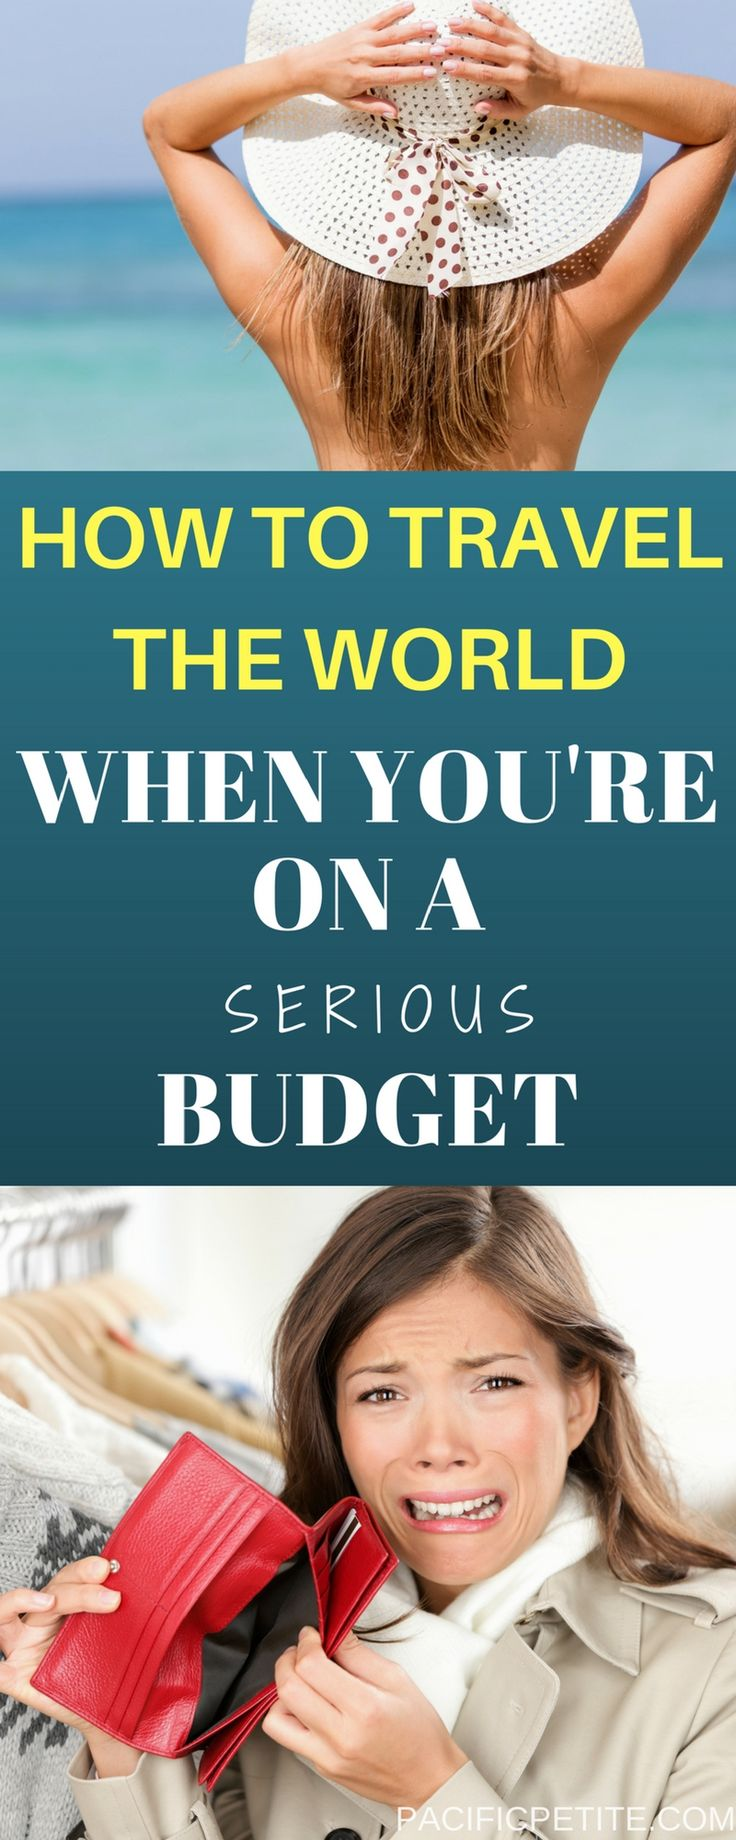 How to travel the world when you're on a serious budget